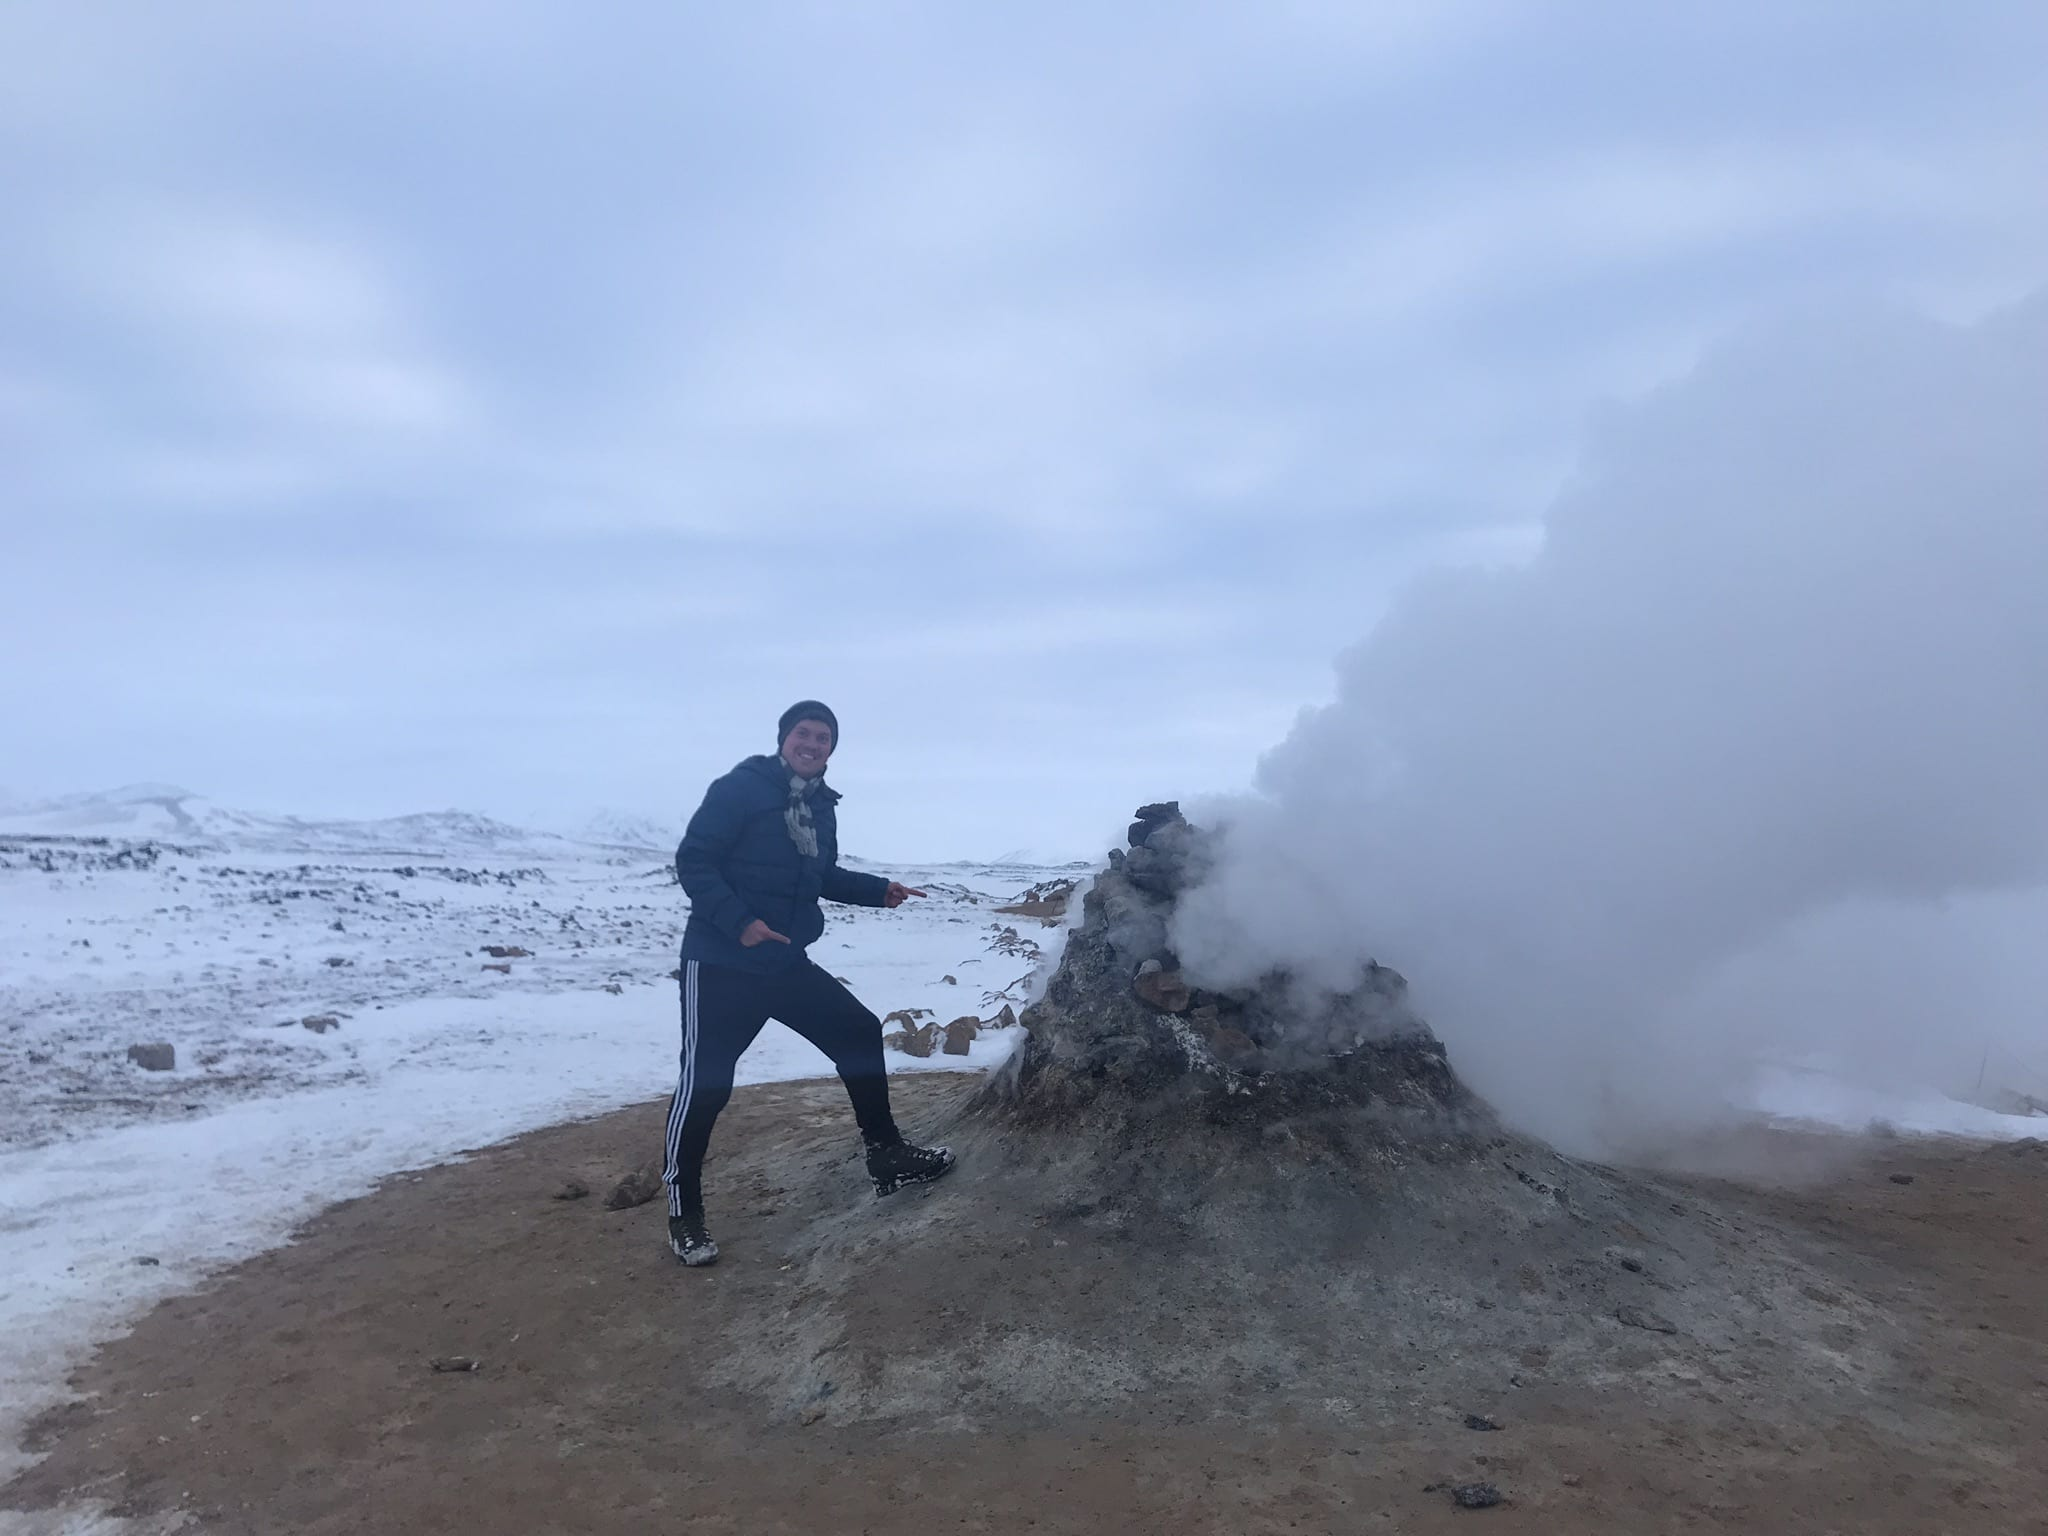 Expedition to a new world formed by fire and ice